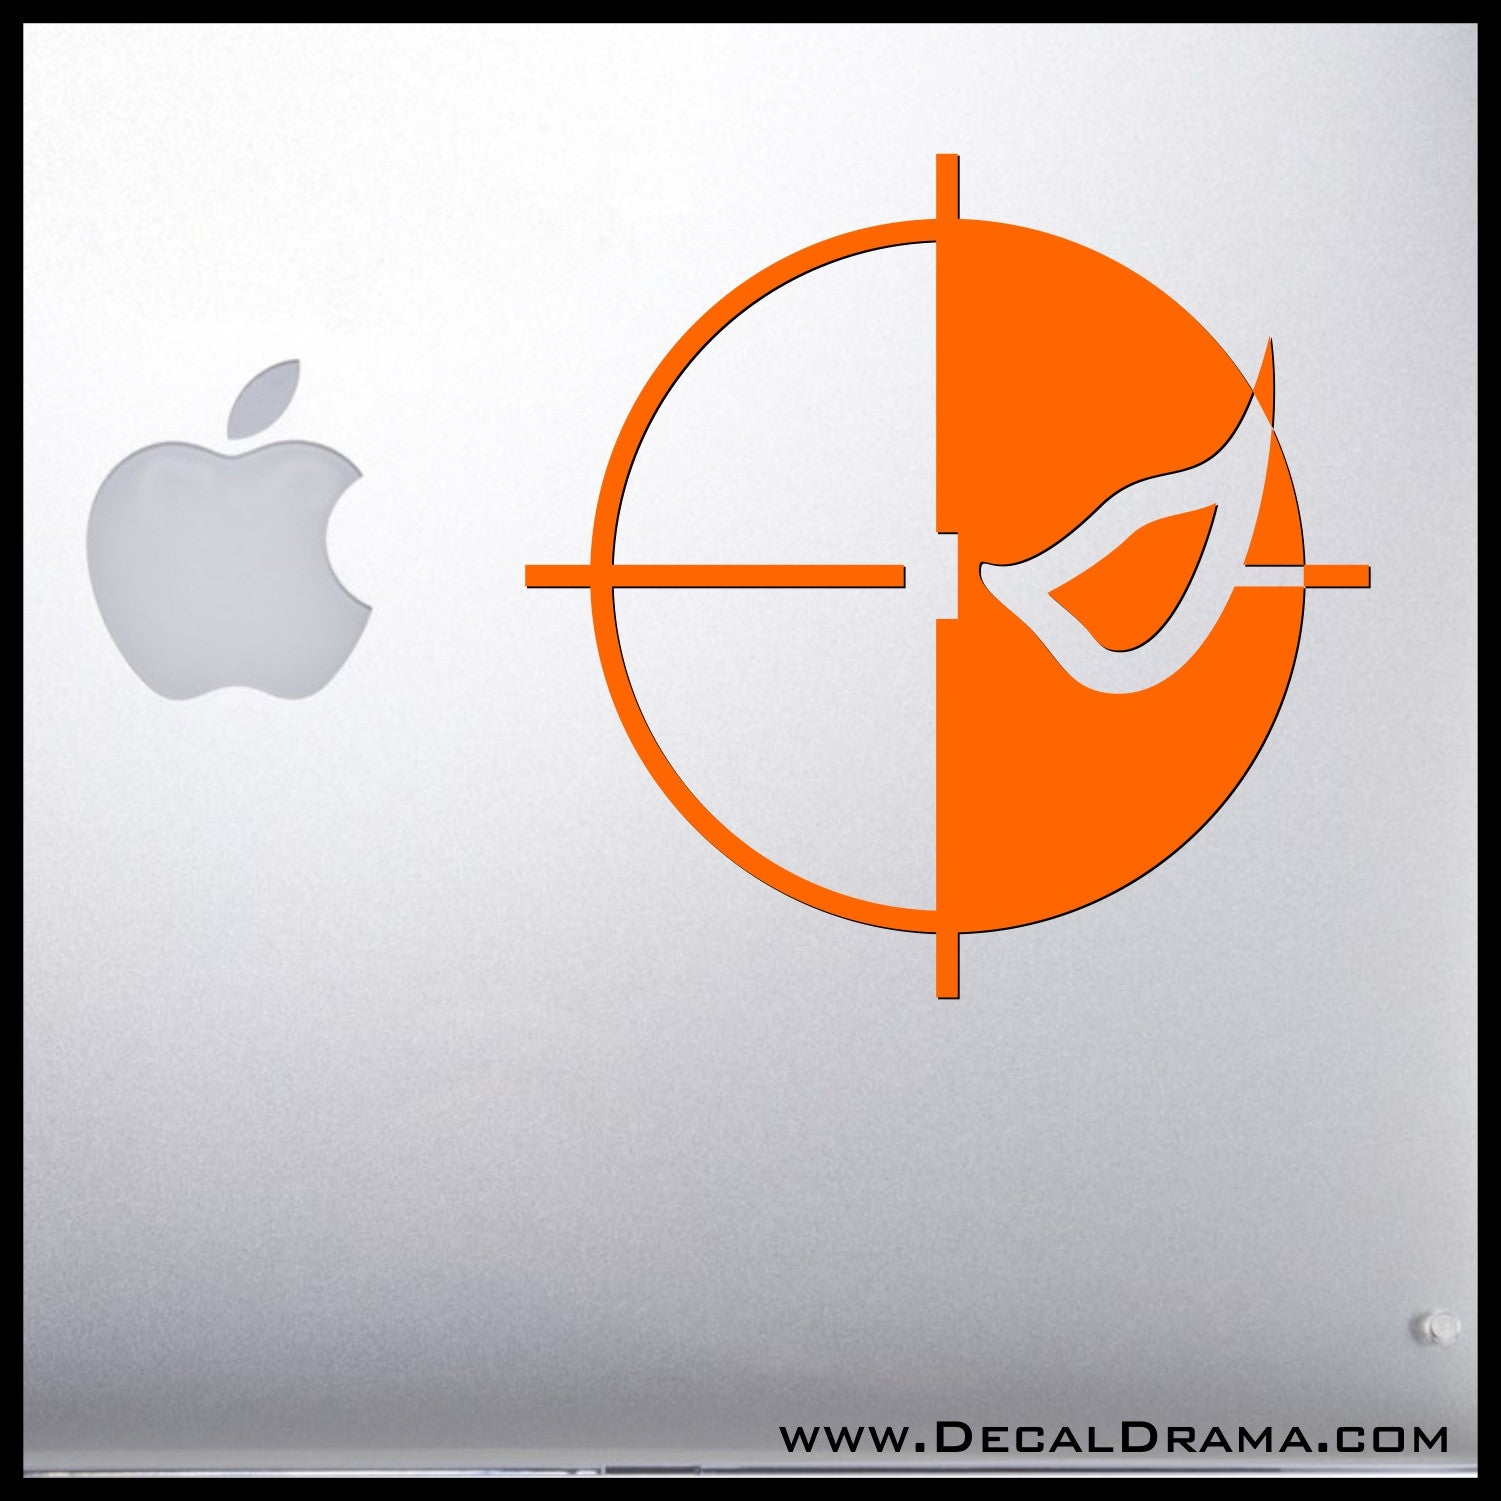 Deathstroke Slade Wilson emblem, DC Comics Arrowverse, Vinyl Car/Laptop Decal